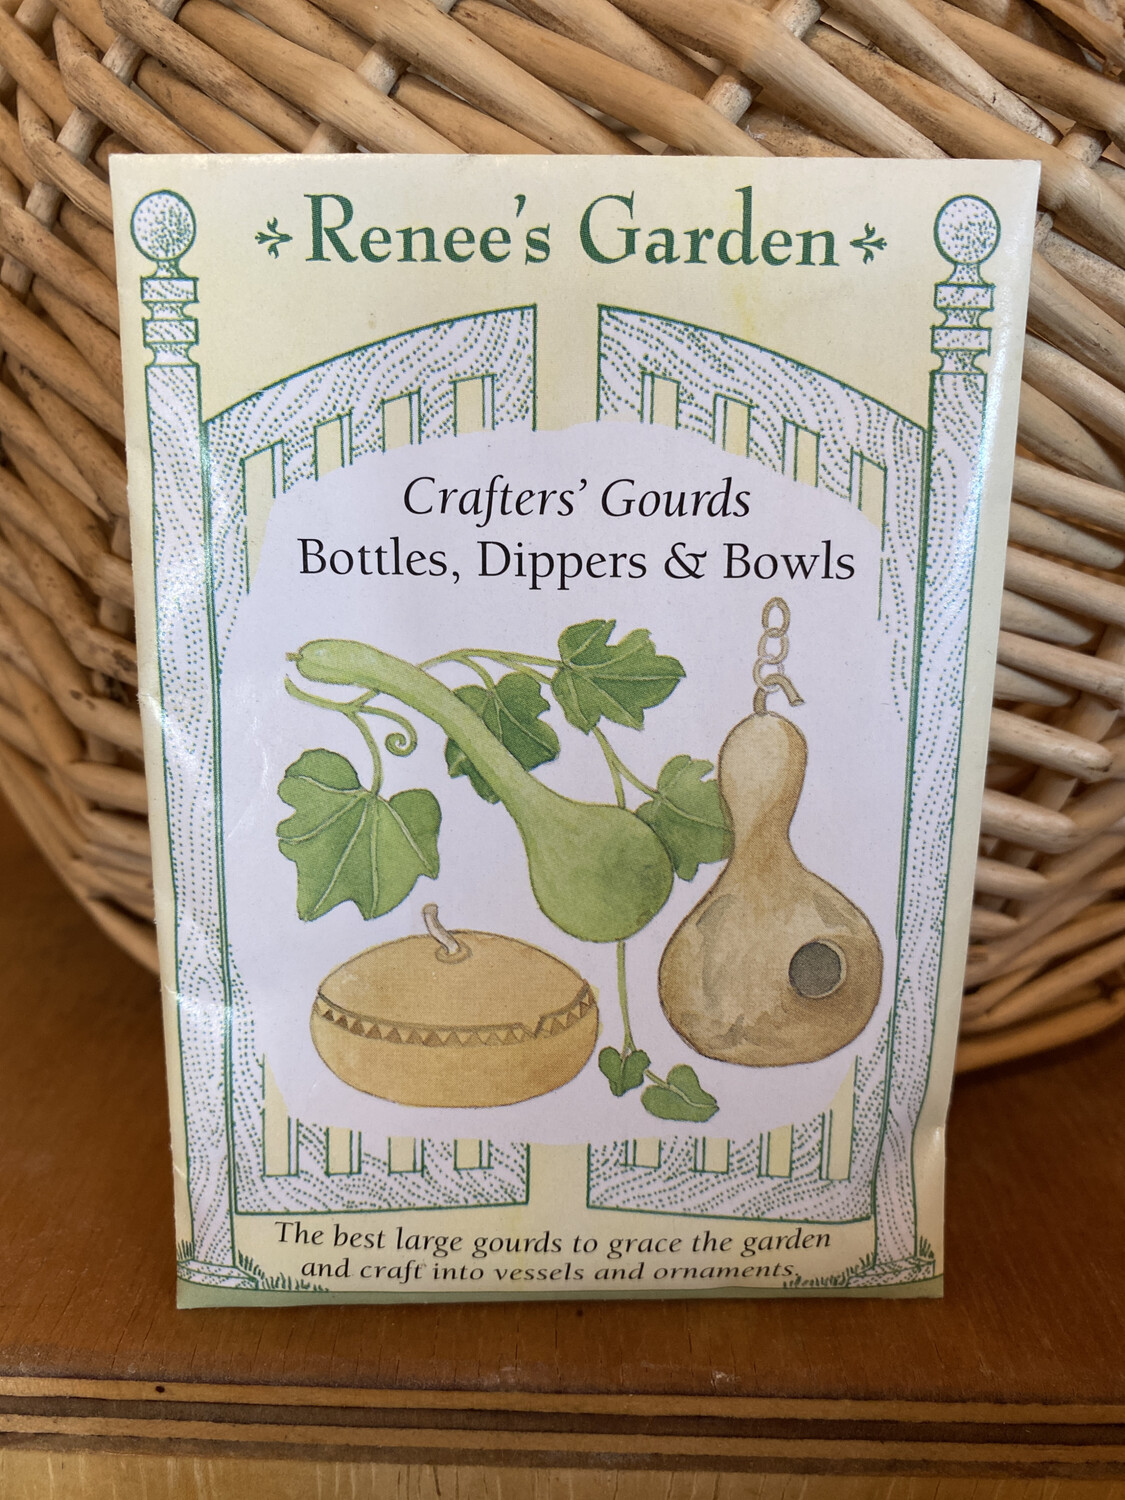 Crafters' Gourds Bottles, Dippers & Bowls | Renee's Garden Seed Pack | Past Year's Seeds | Reduced Price